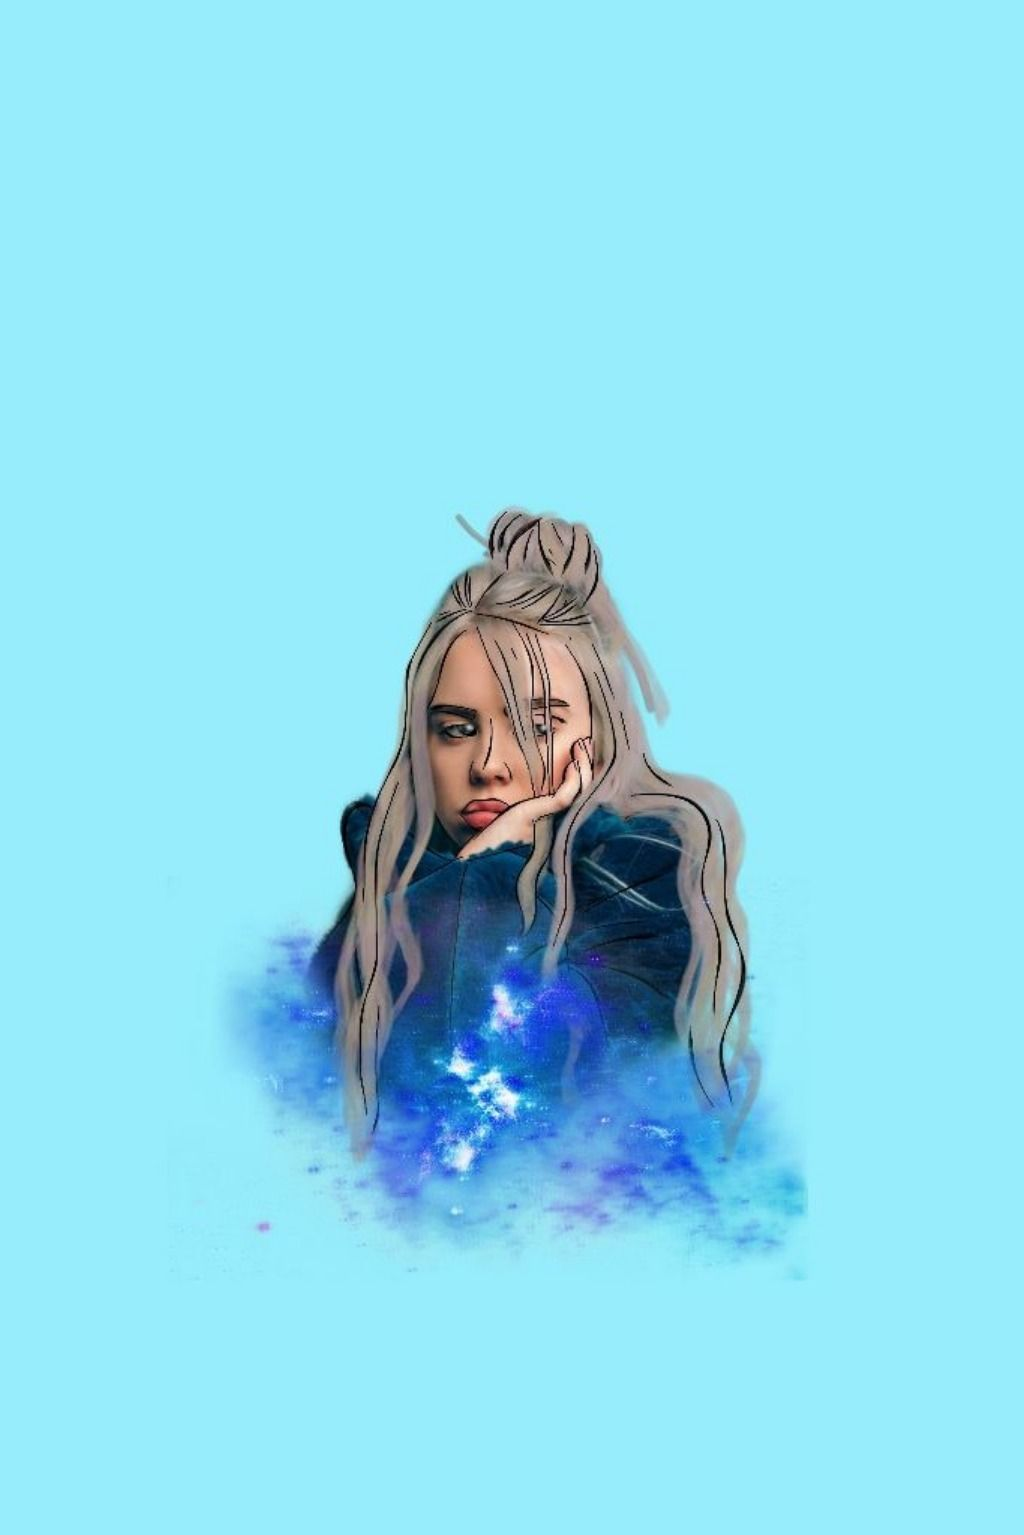 10 Ways To Use Stickers To Flood Your Socials With Billie Eilish Fan Art Create Discover With Picsart Billie Billie Eilish Girls Cartoon Art